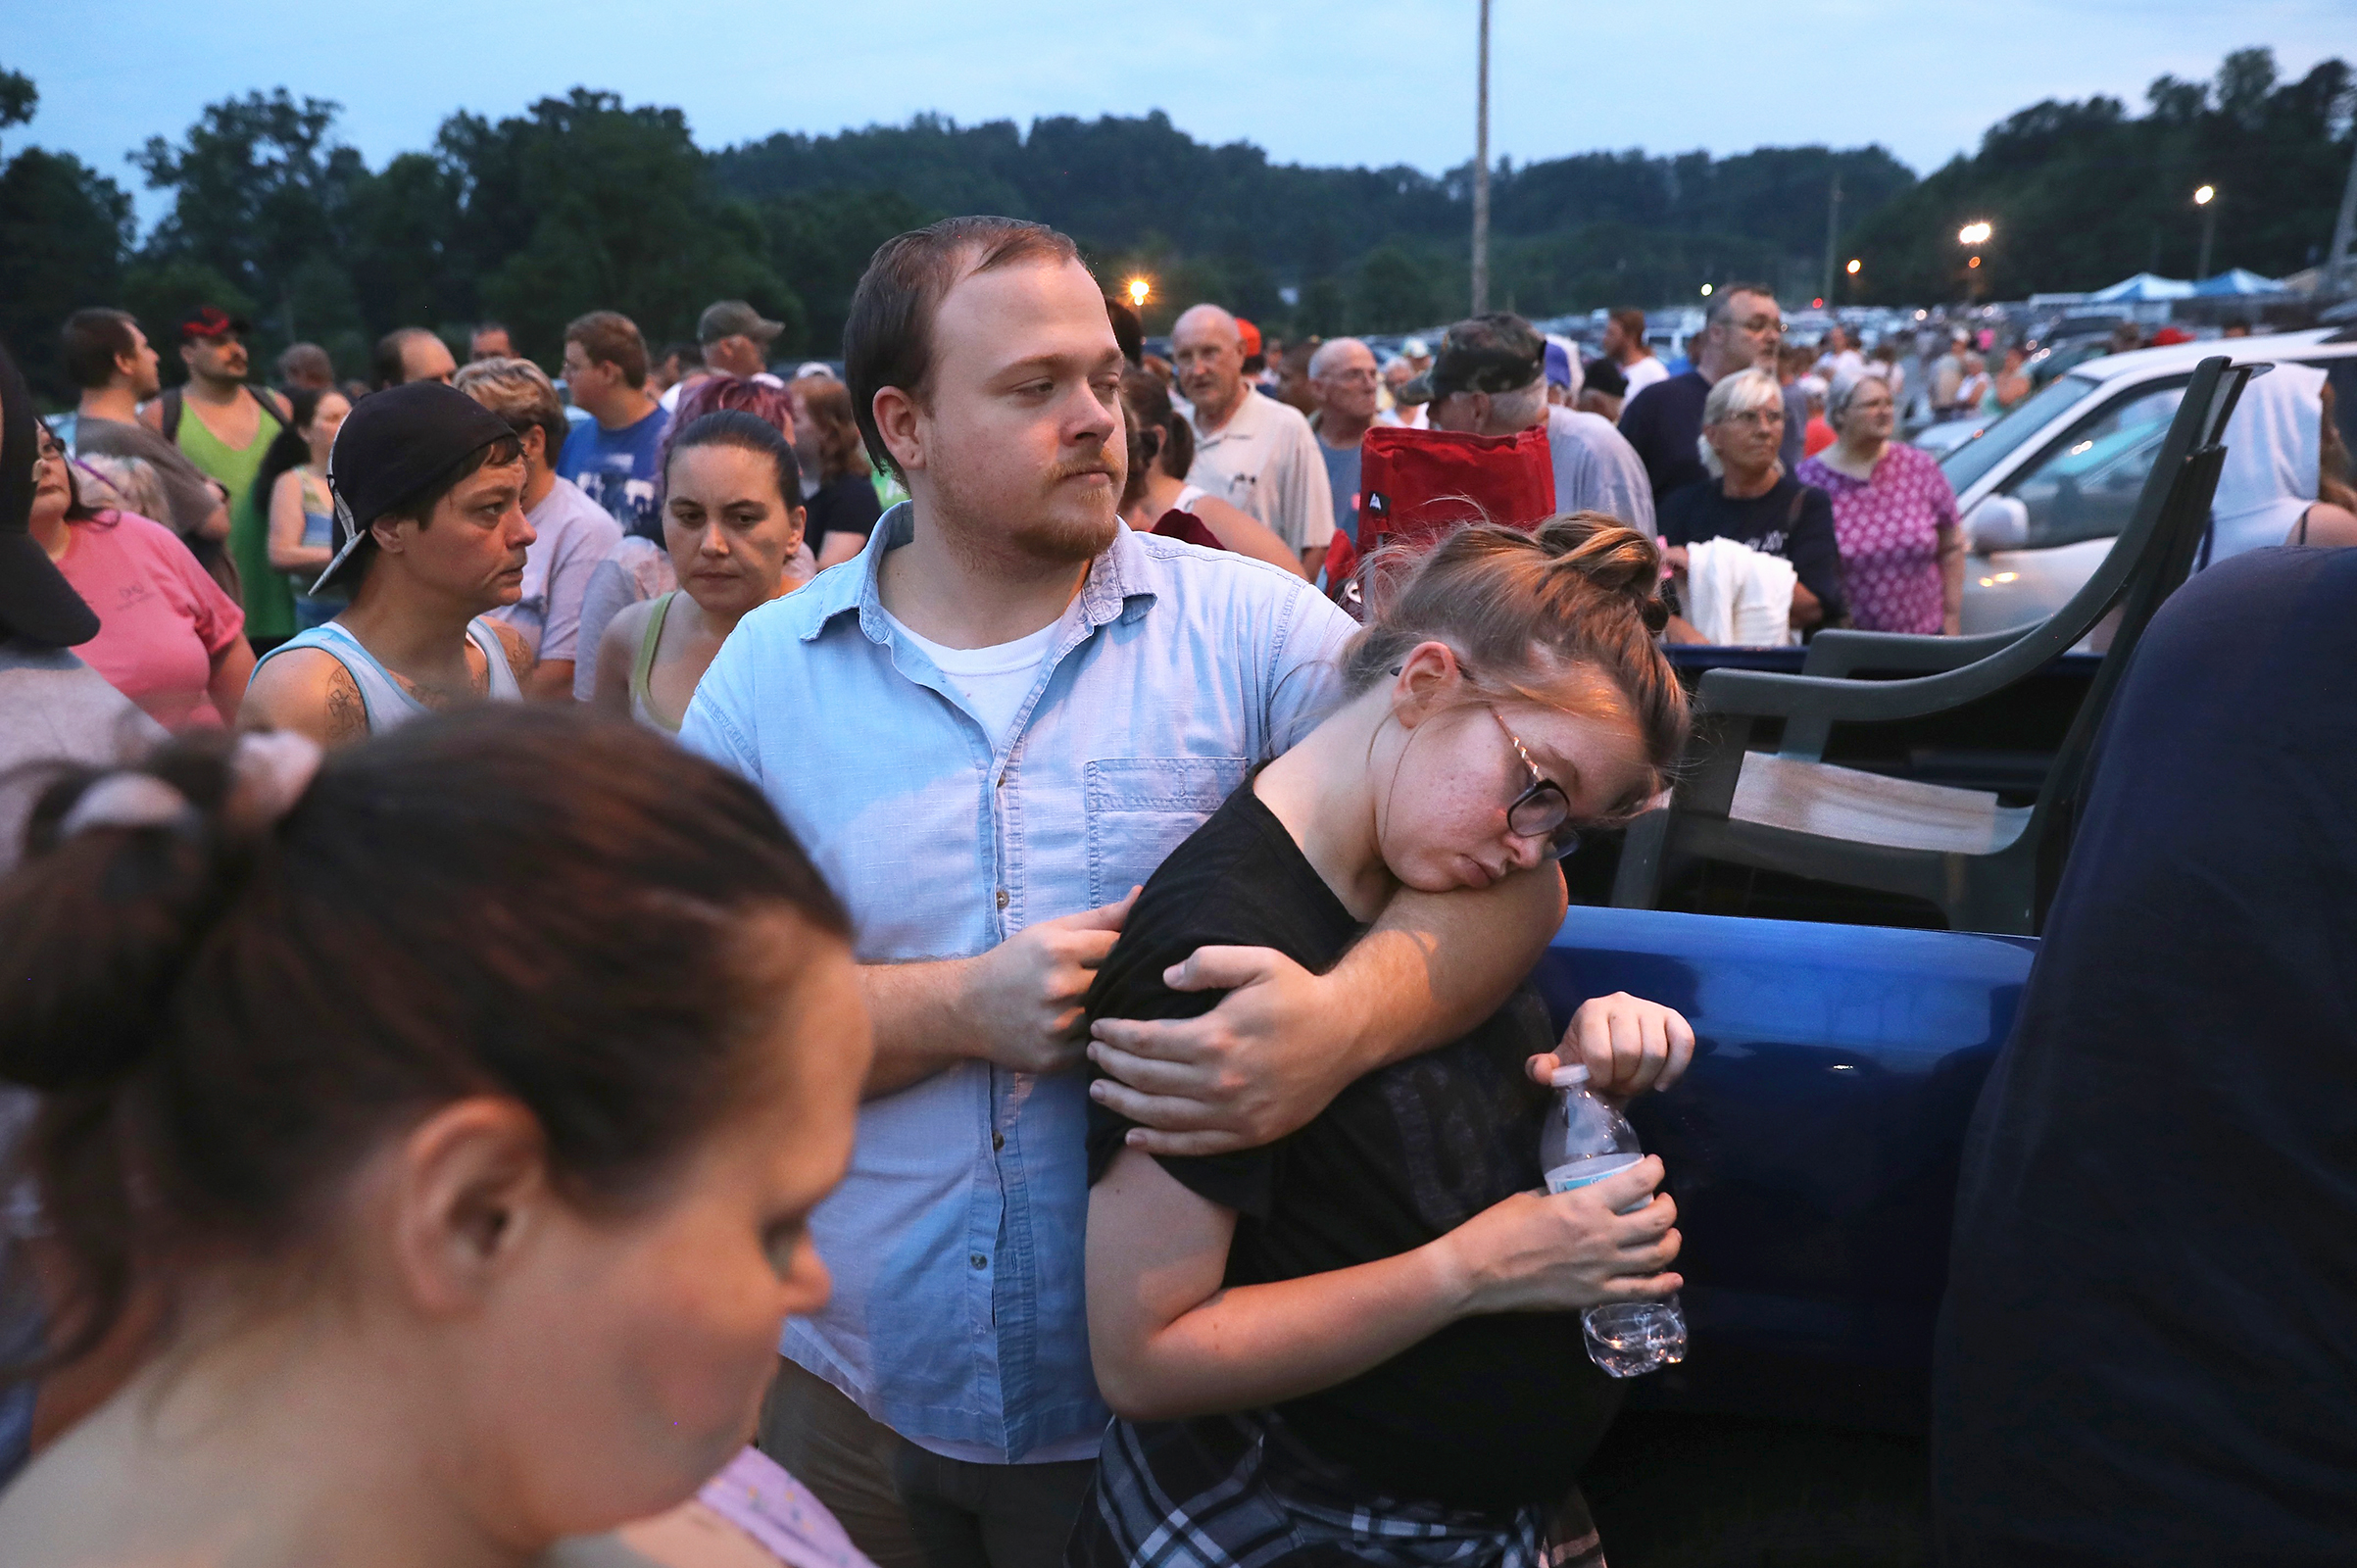 People wait to enter the Remote Area Medical (RAM) mobile clinic after sleeping in their cars on July 21, 2017 in Wise, Va.